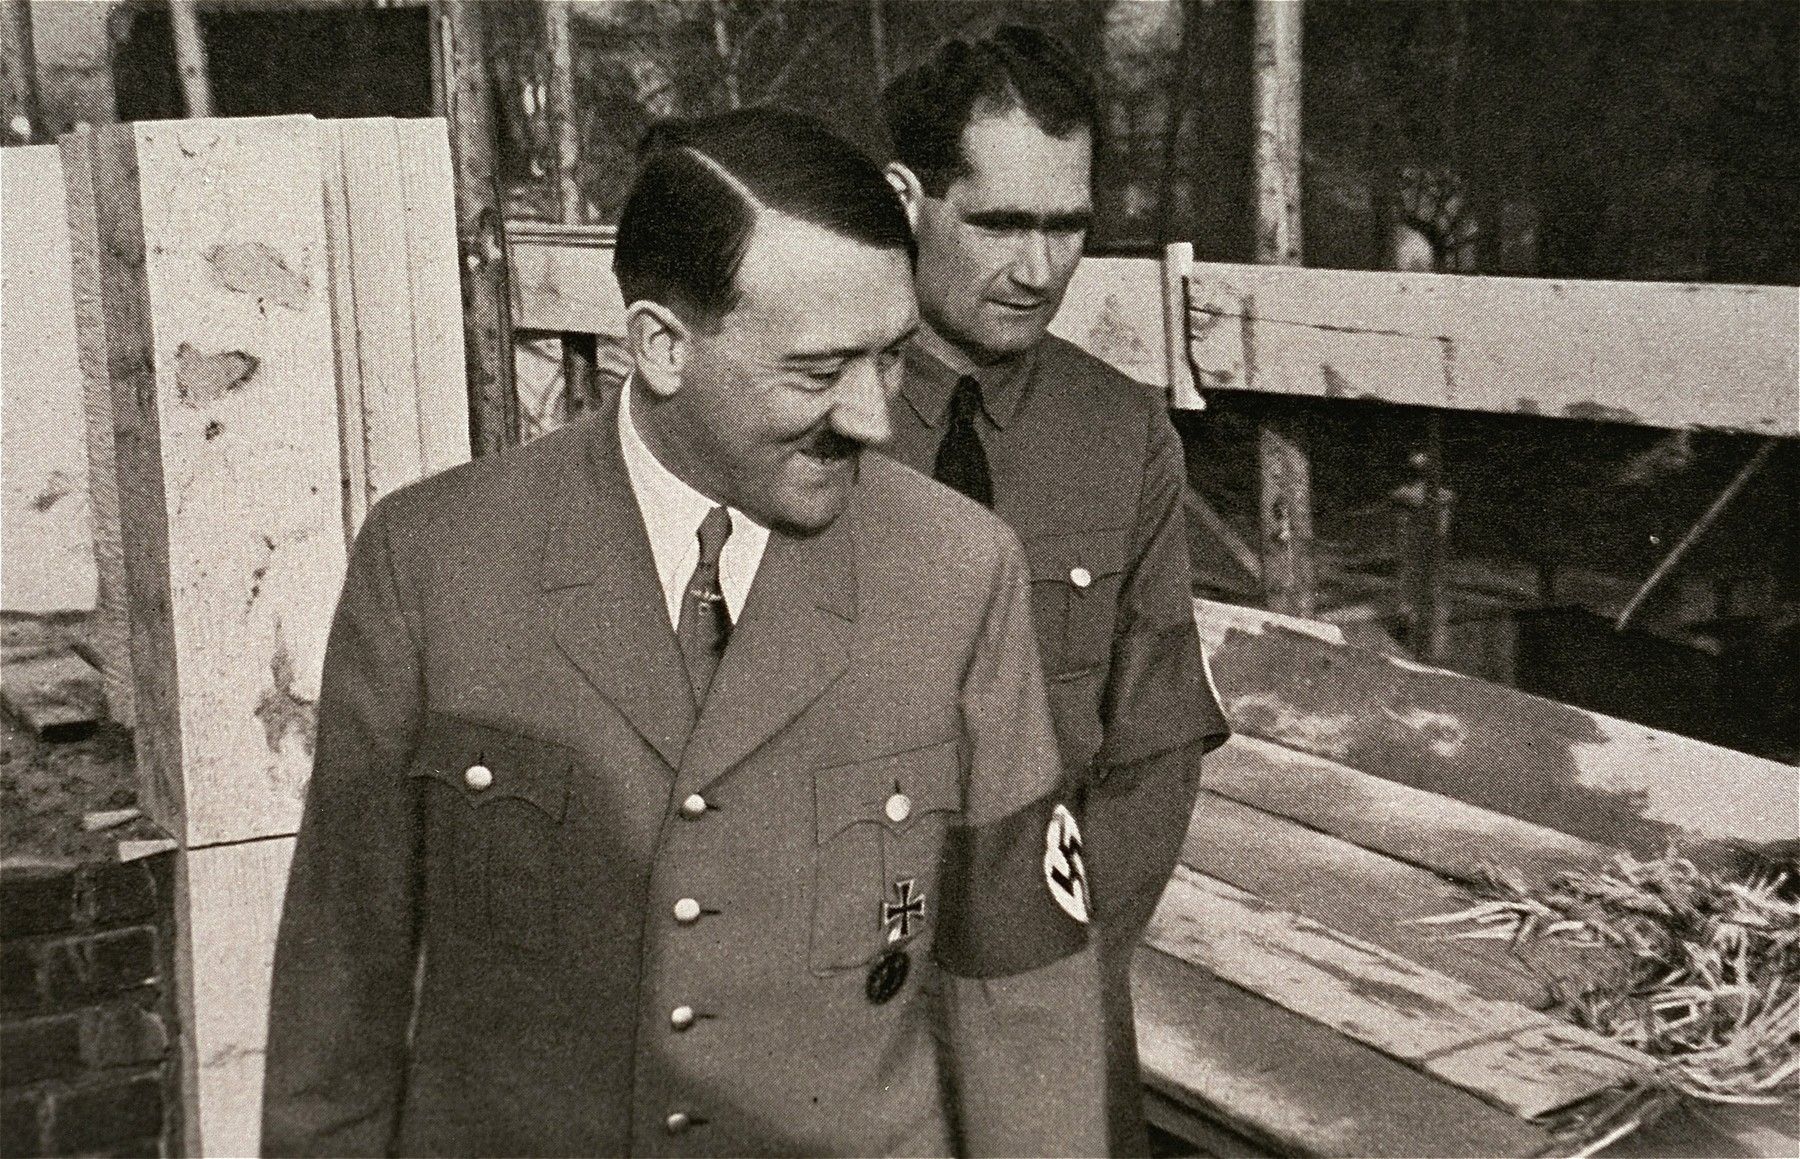 Hitler and Rudolf Hess inspecting the building of the Fuehrer's house in Munich.